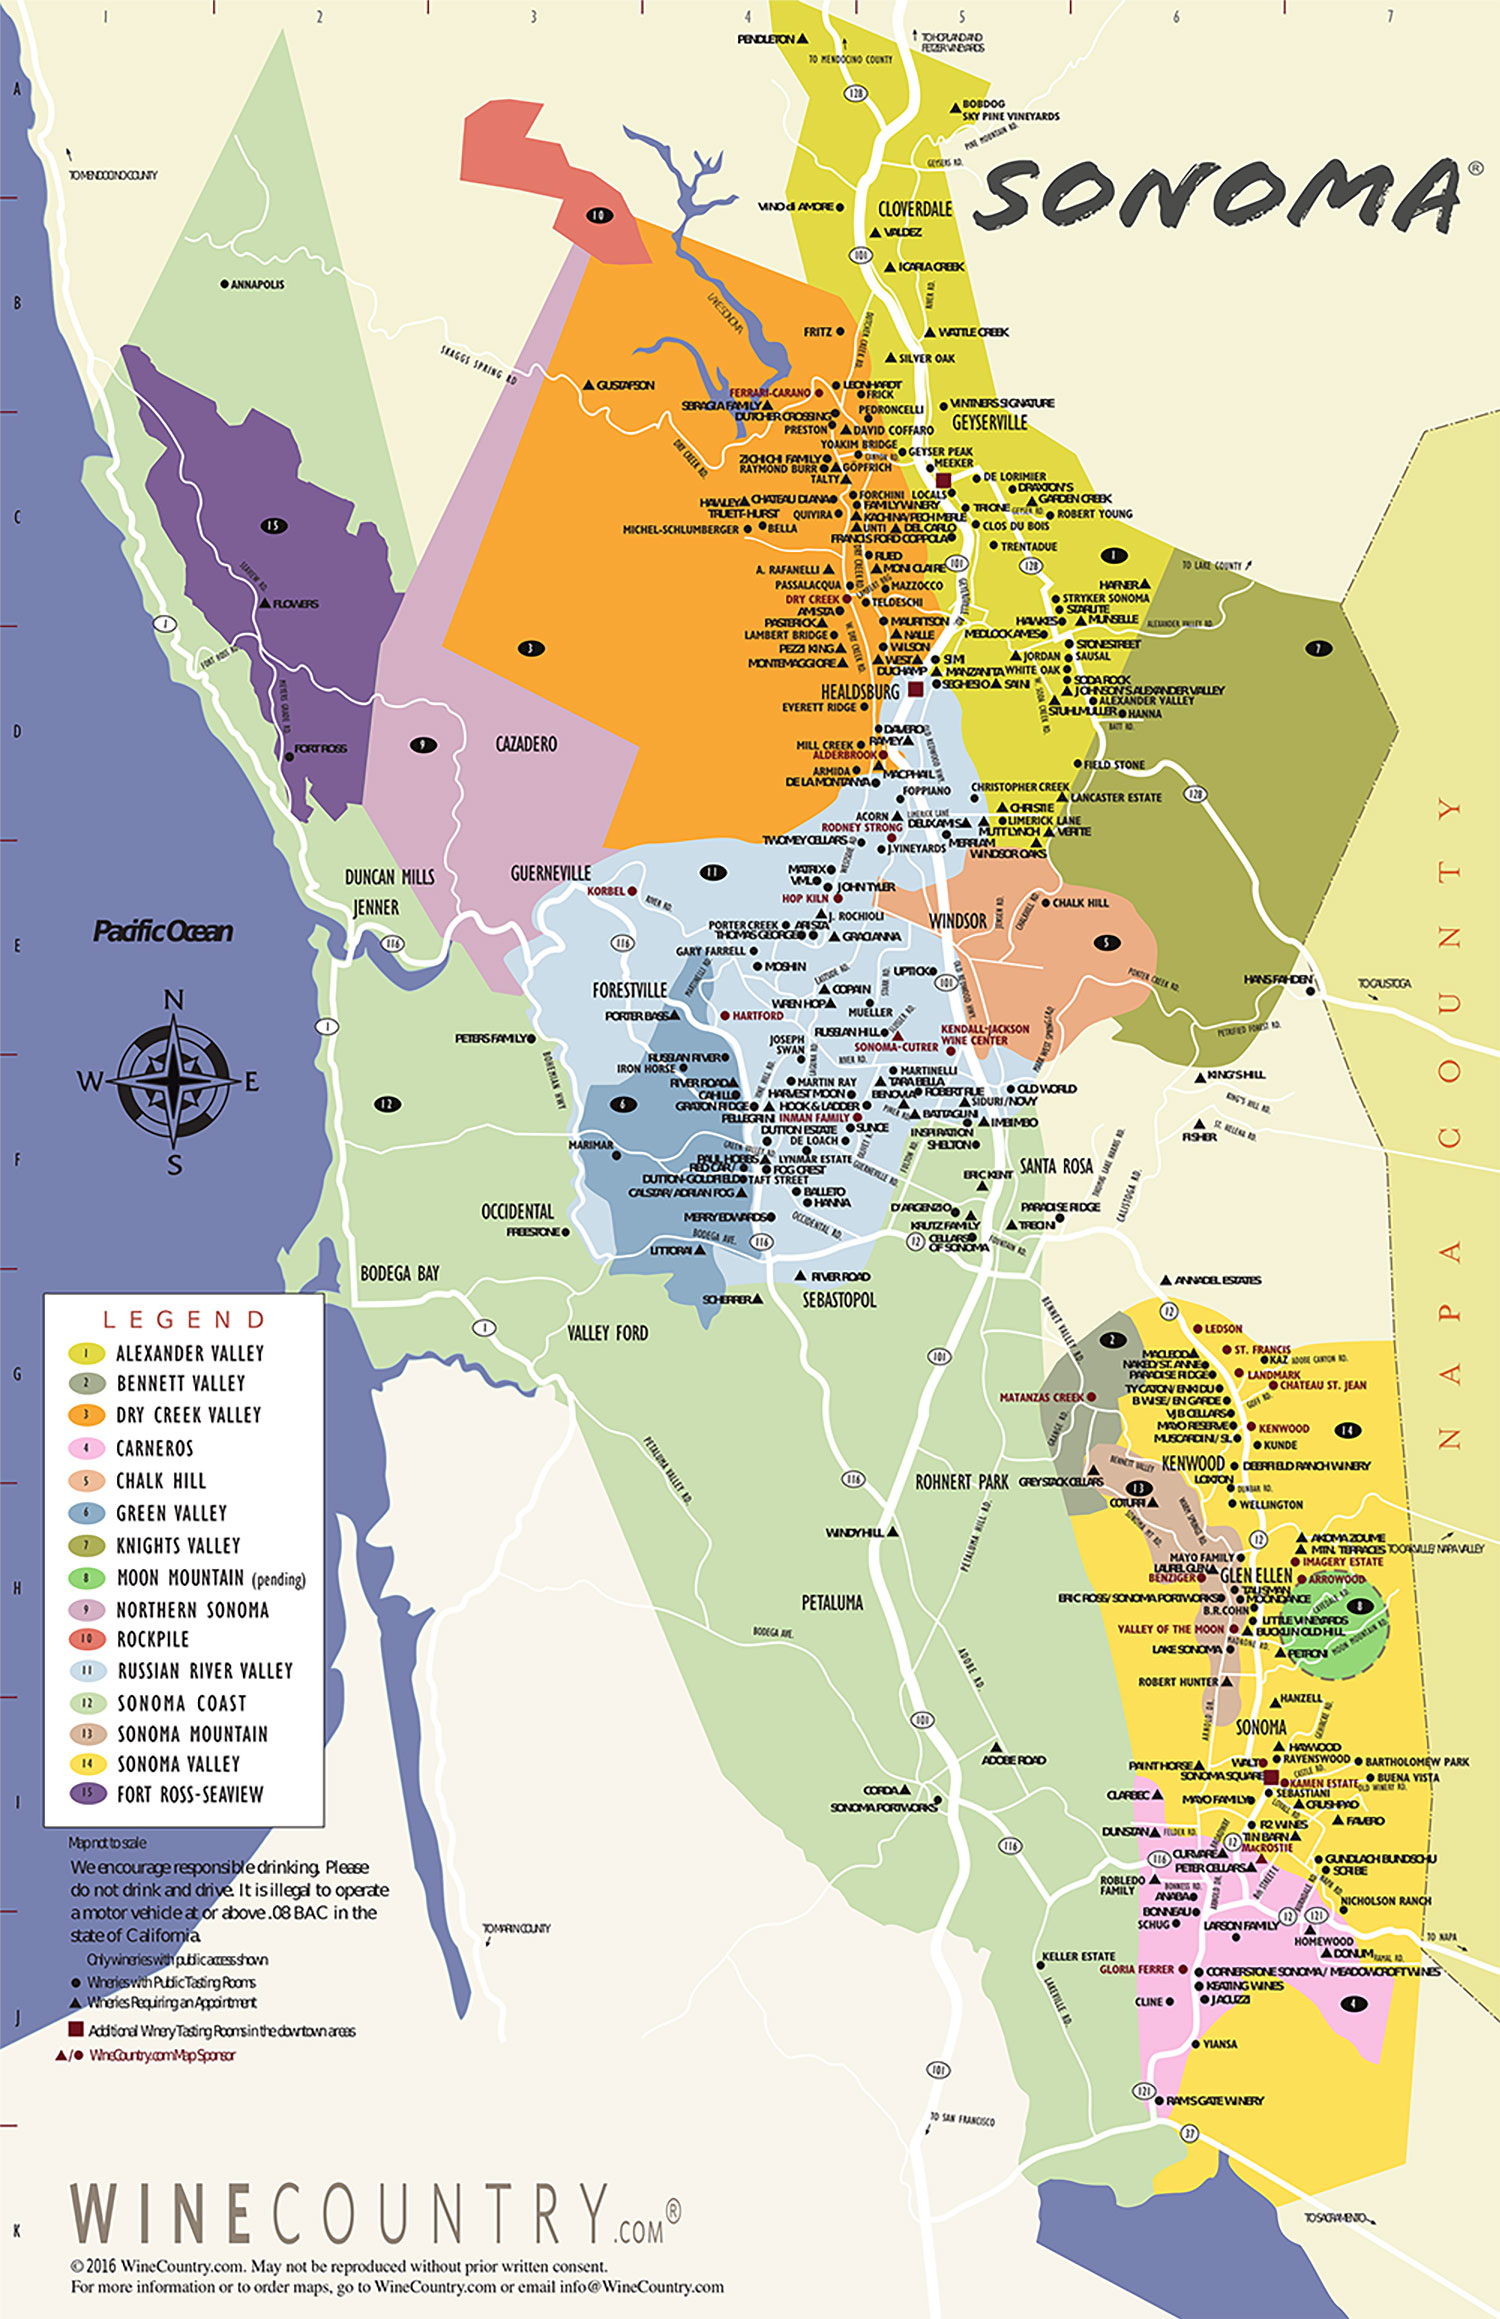 view larger map download pdf. sonoma county wine country maps  sonomacom